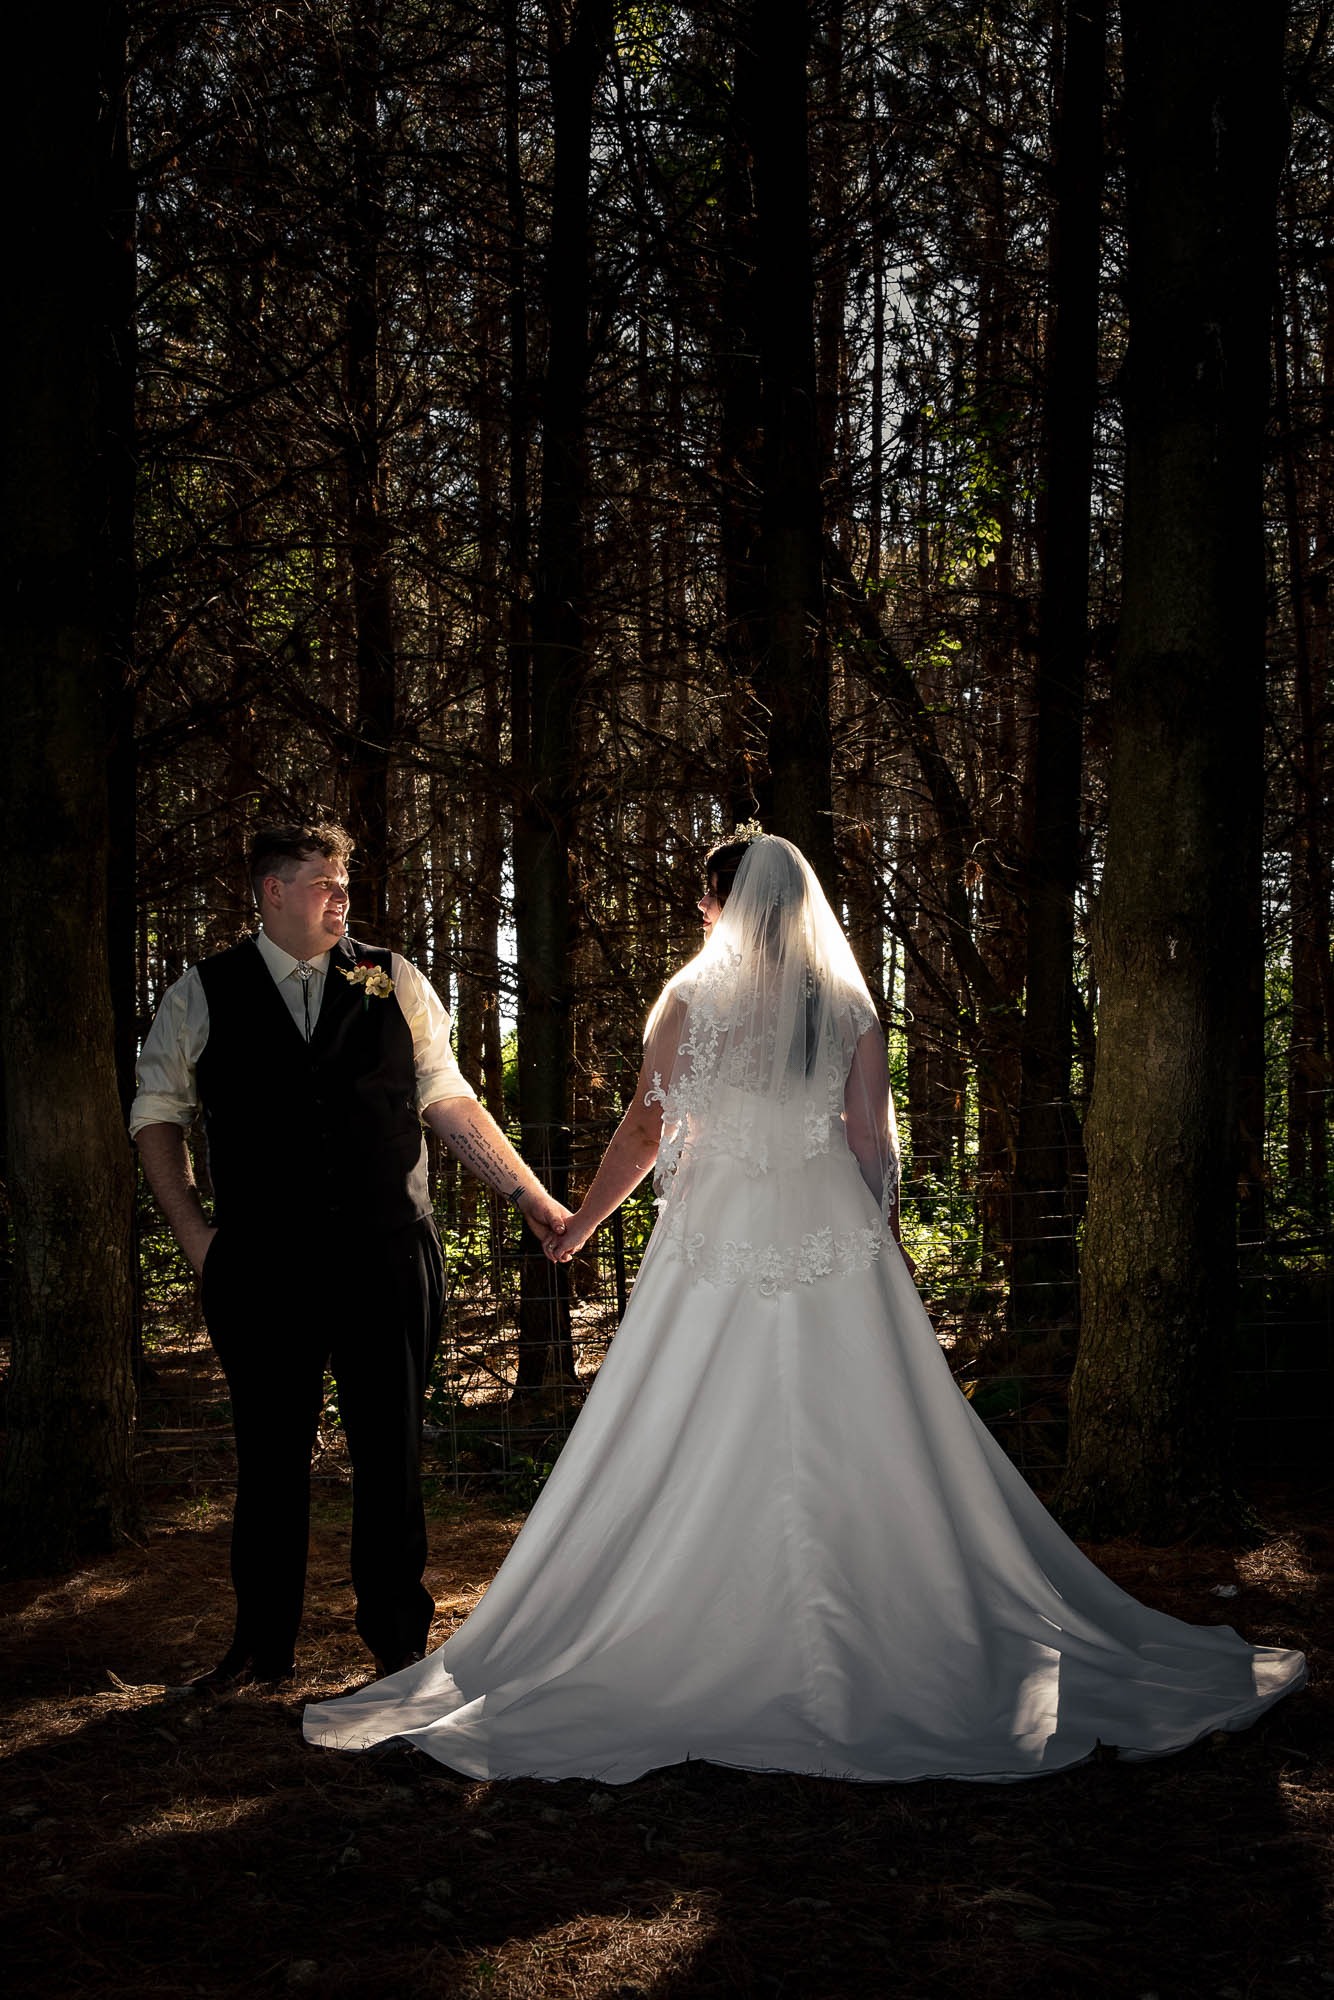 Bride in Forest by La Crosse, WI Photographer Jeff Wiswell